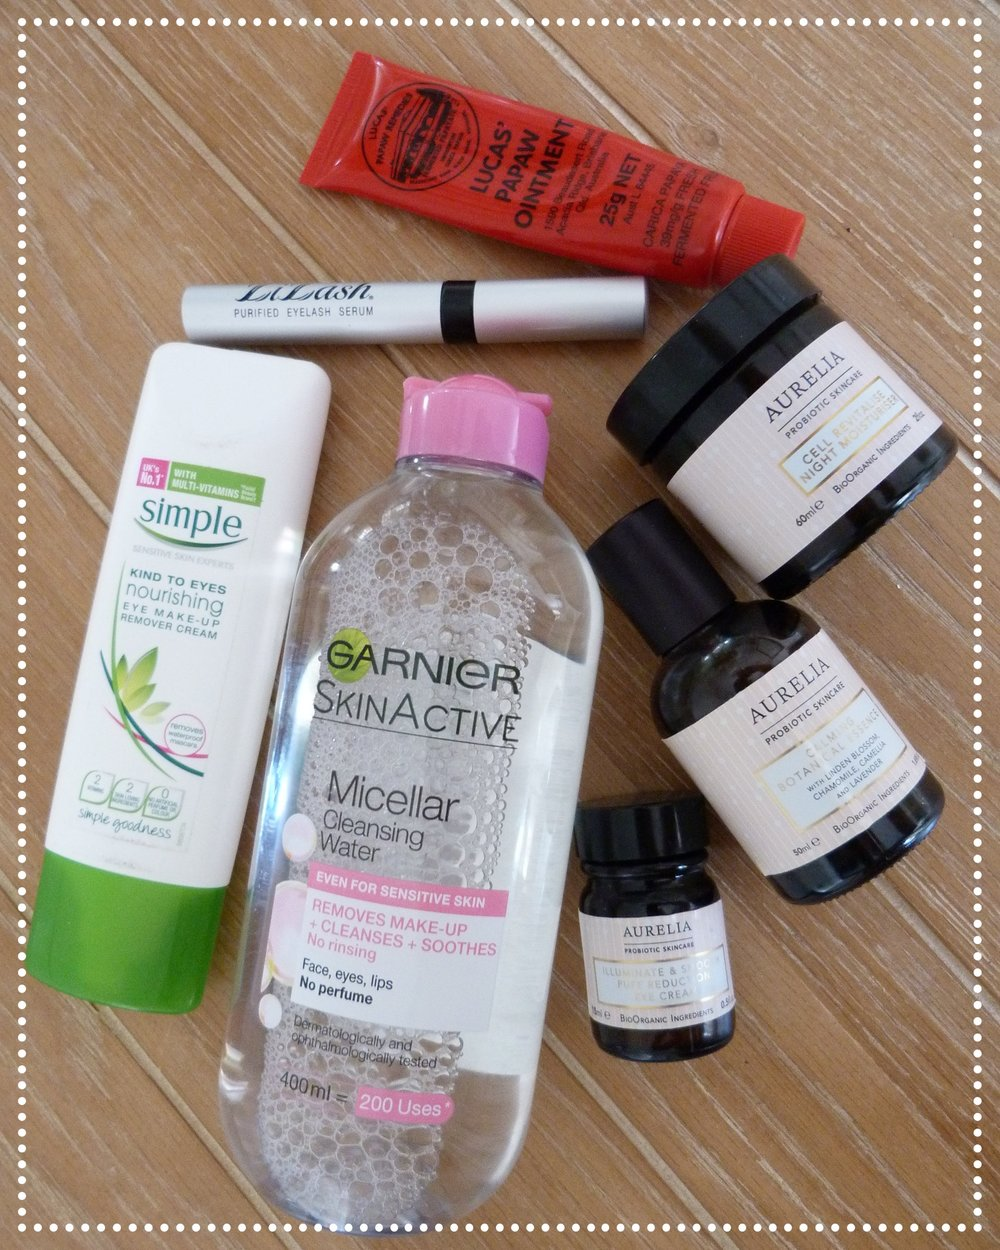 Products in My Evening Skincare Routine